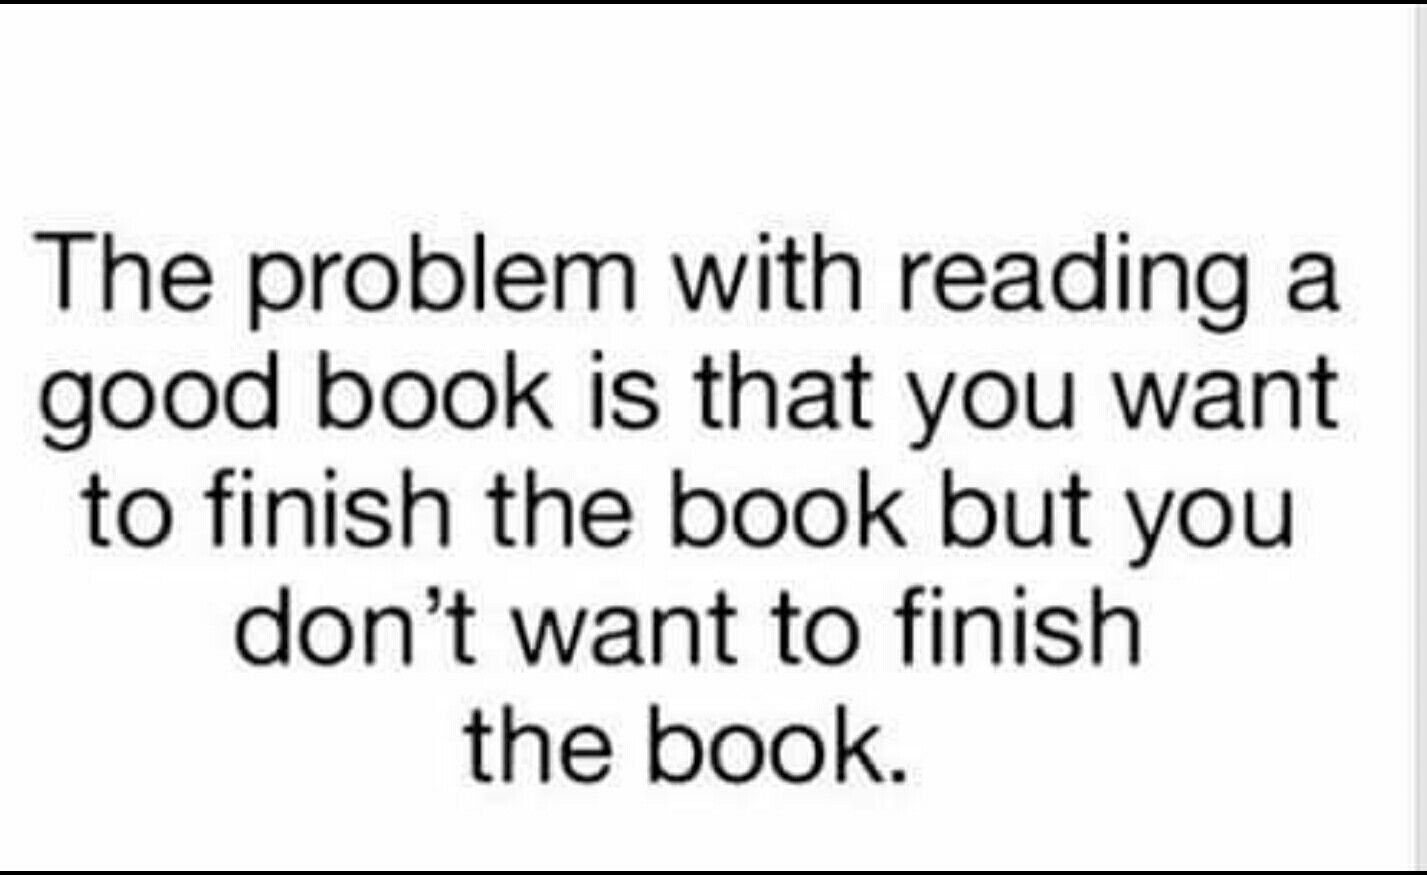 The Problem With Reading A Good Book Is That You Want To Finish The Book  But Donu0027t Want To Finish The Book.